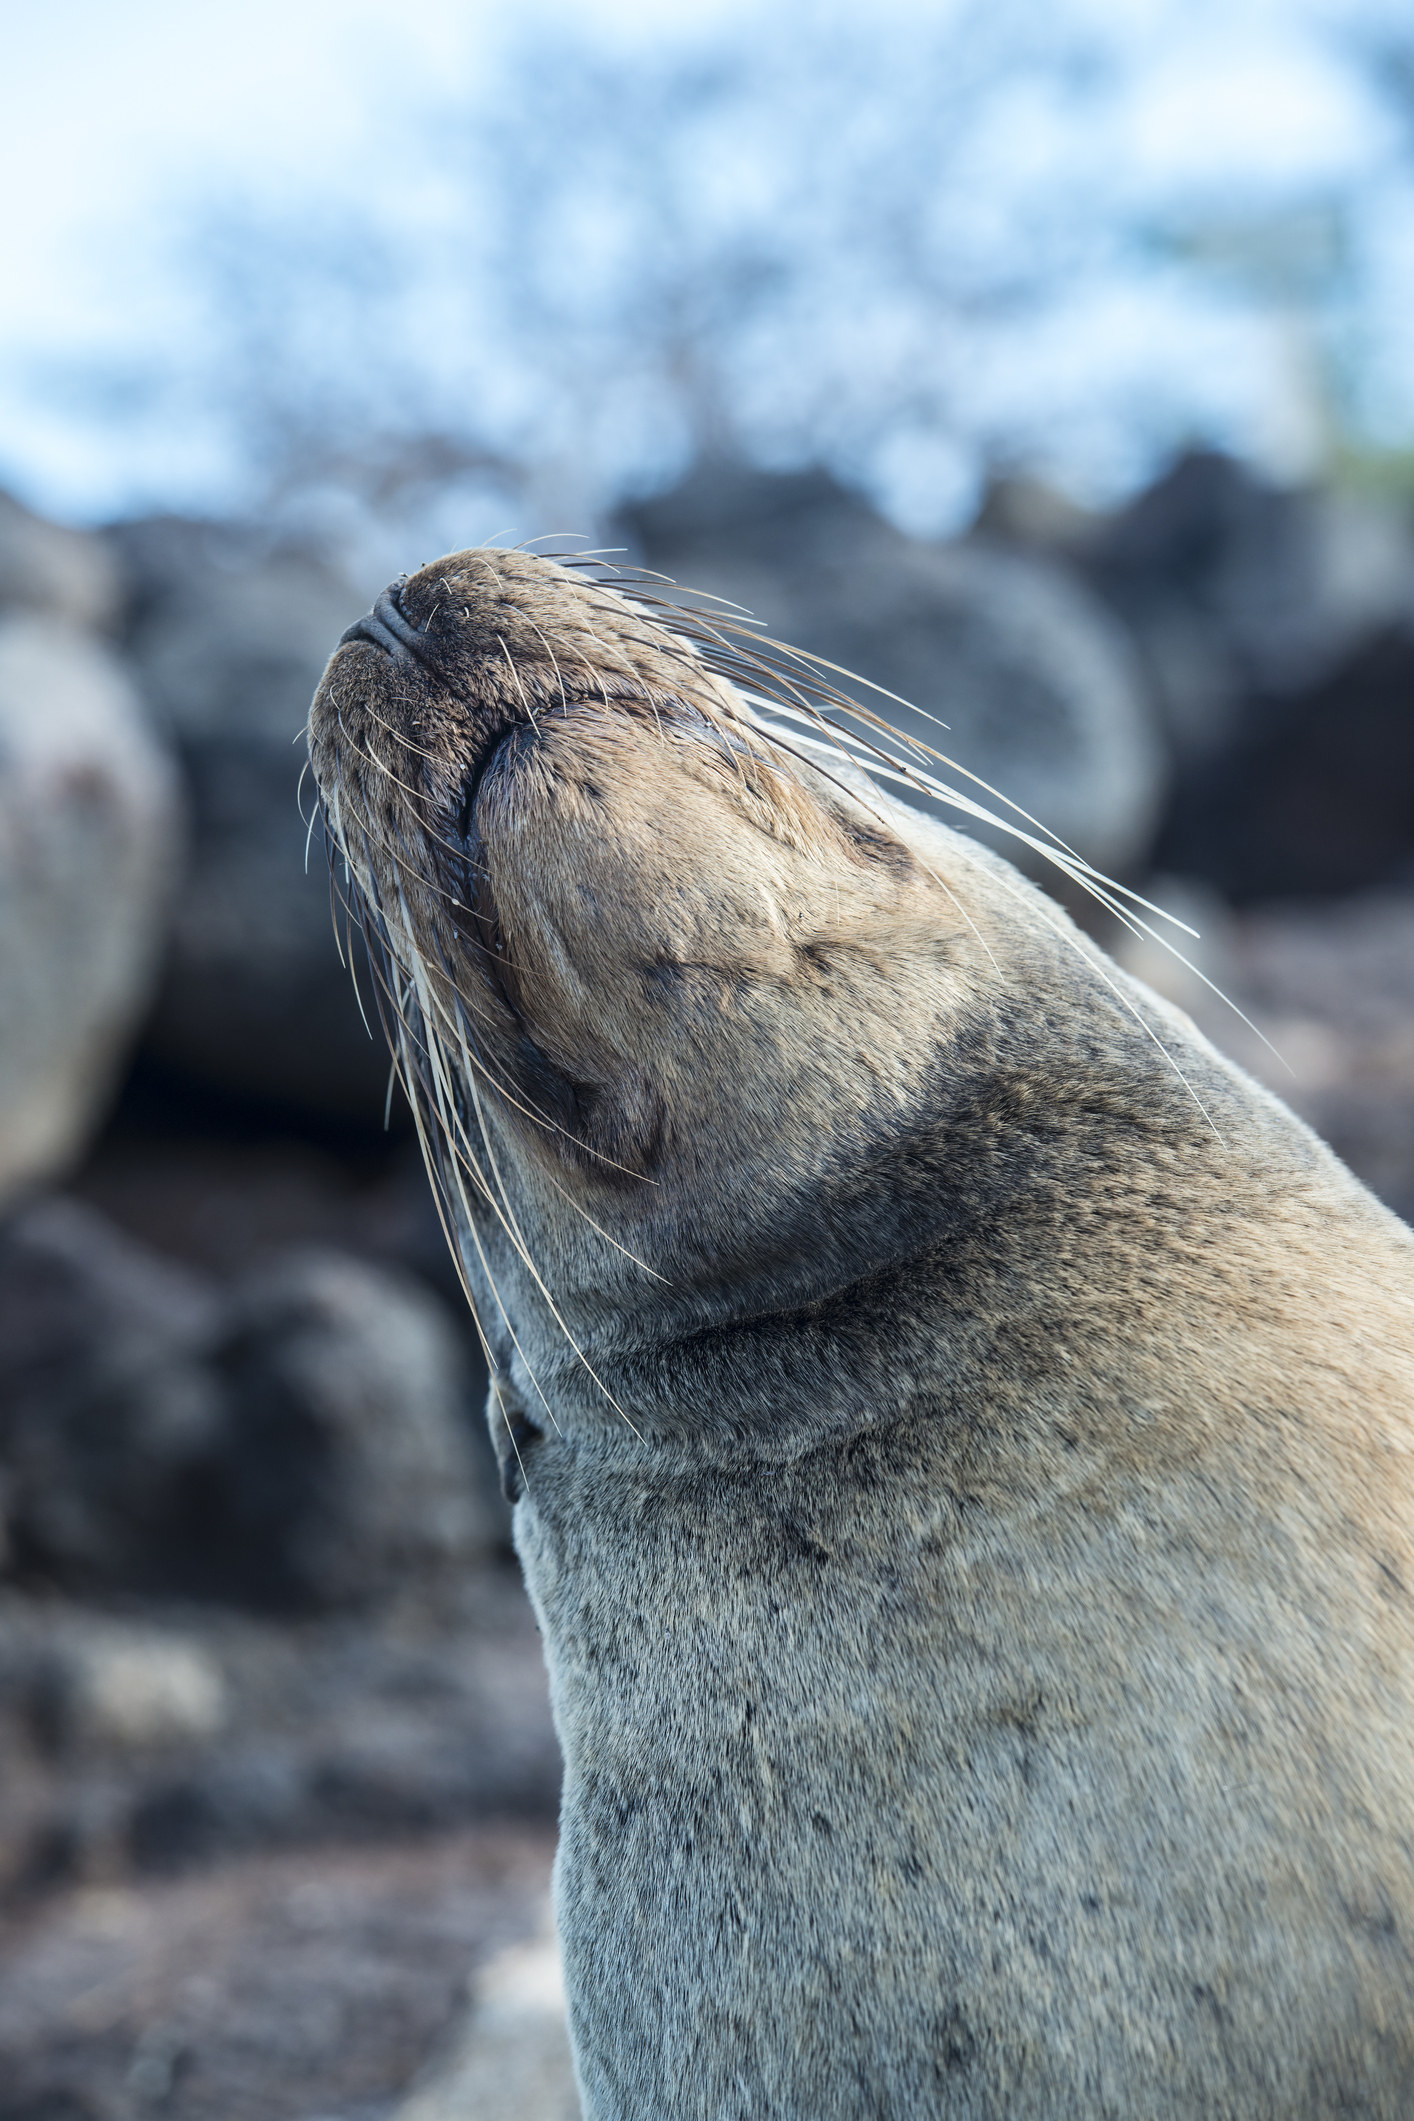 Ecuador: Galápagos National Park -  The volcanic lands that make up the Galapagos Islands are all protected under a single National Park. Blue-footed boobies, penguins, seals, and flamingos are just some of the creatures that call this place home.